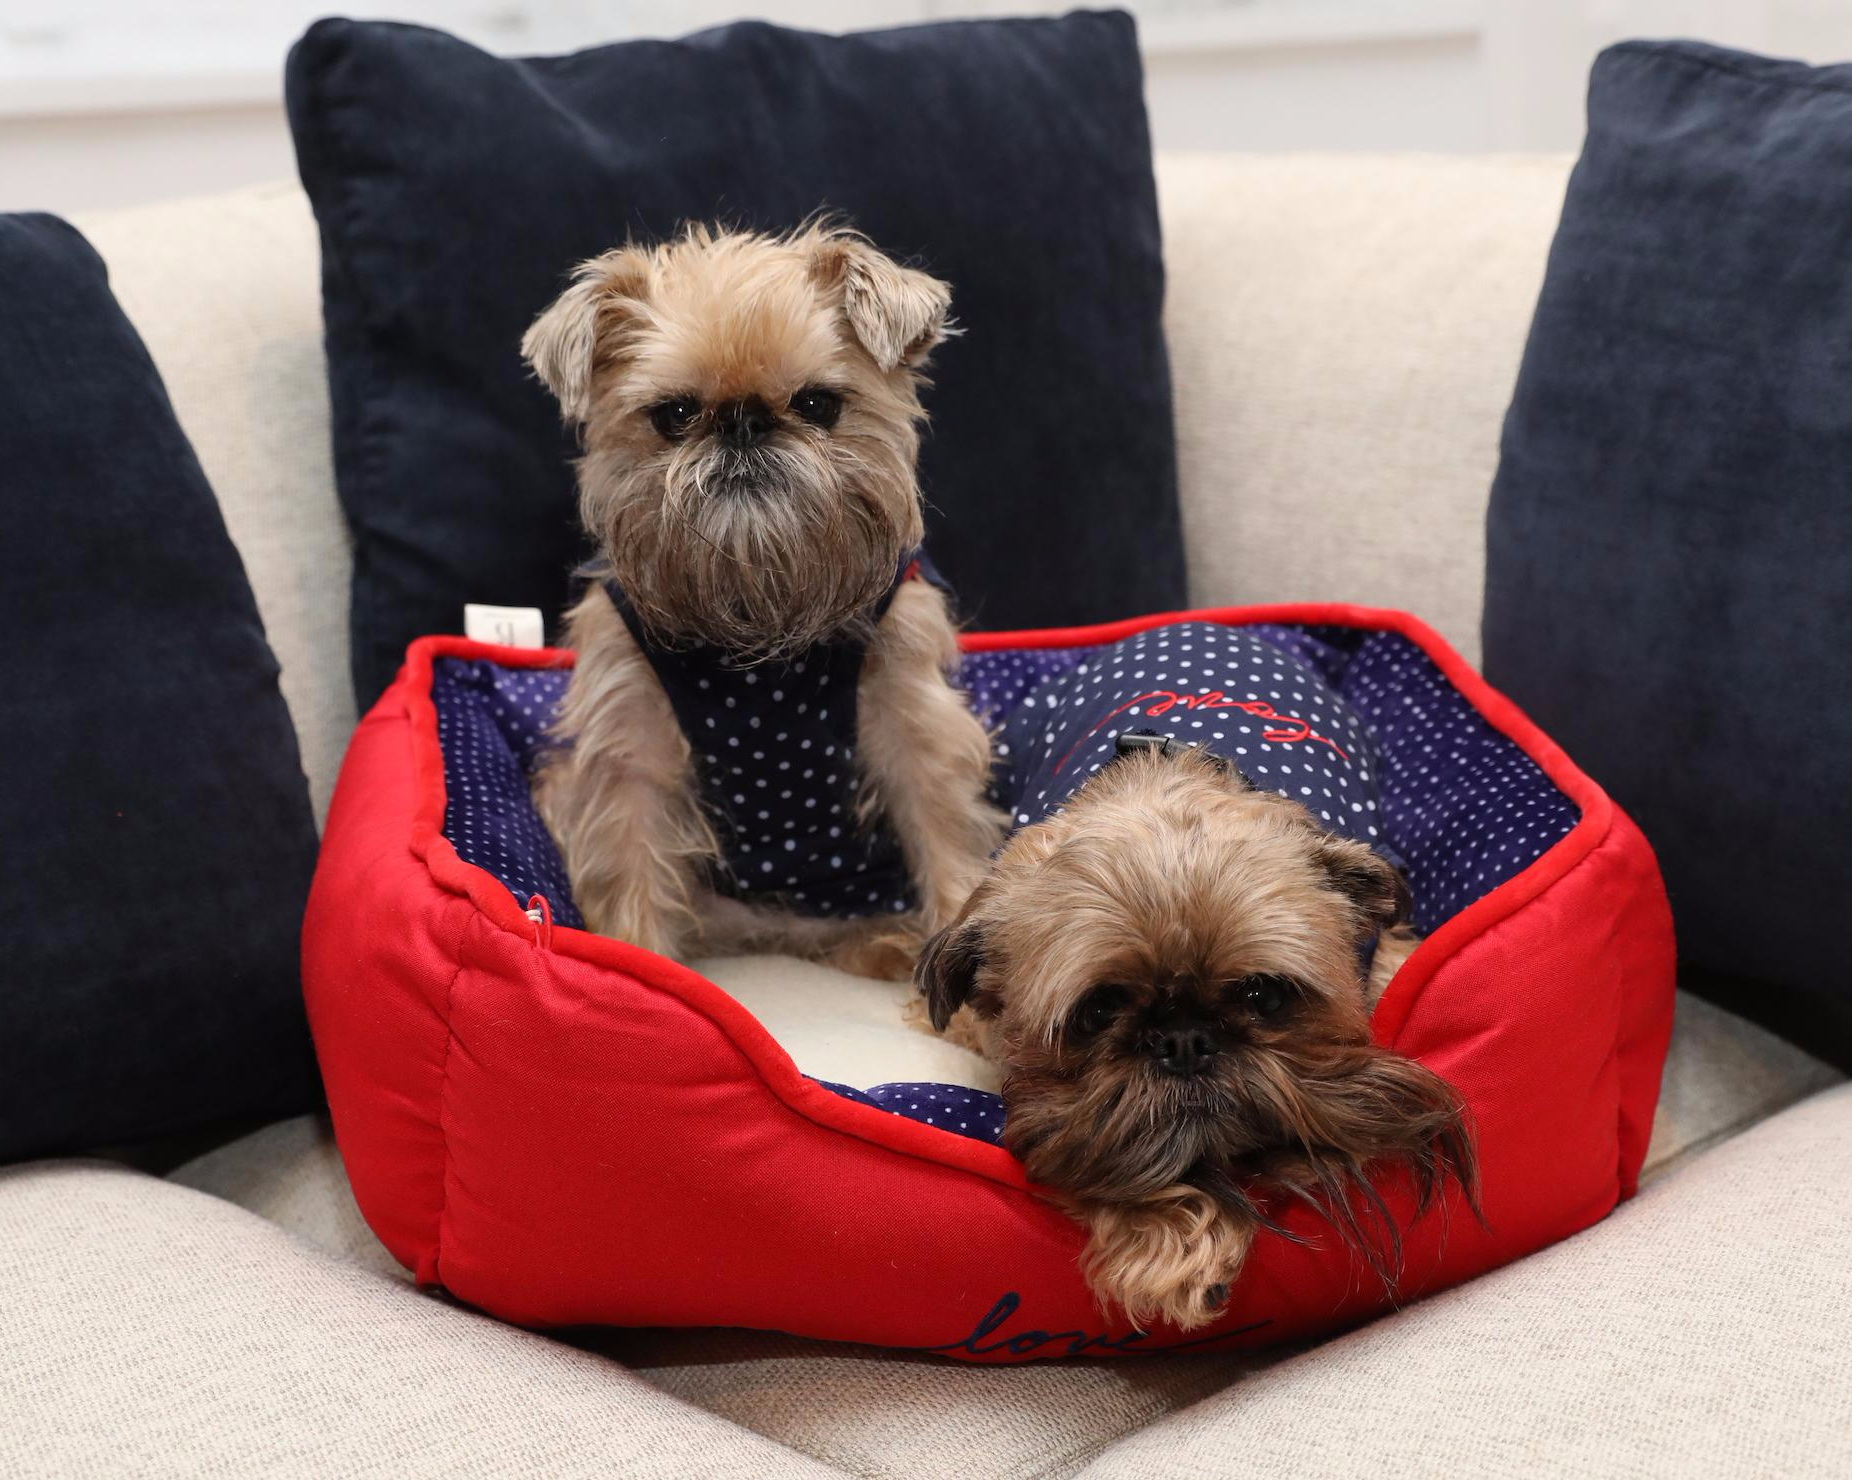 We call it a Love Cuddler Dog Bed for a reason. Your dogs